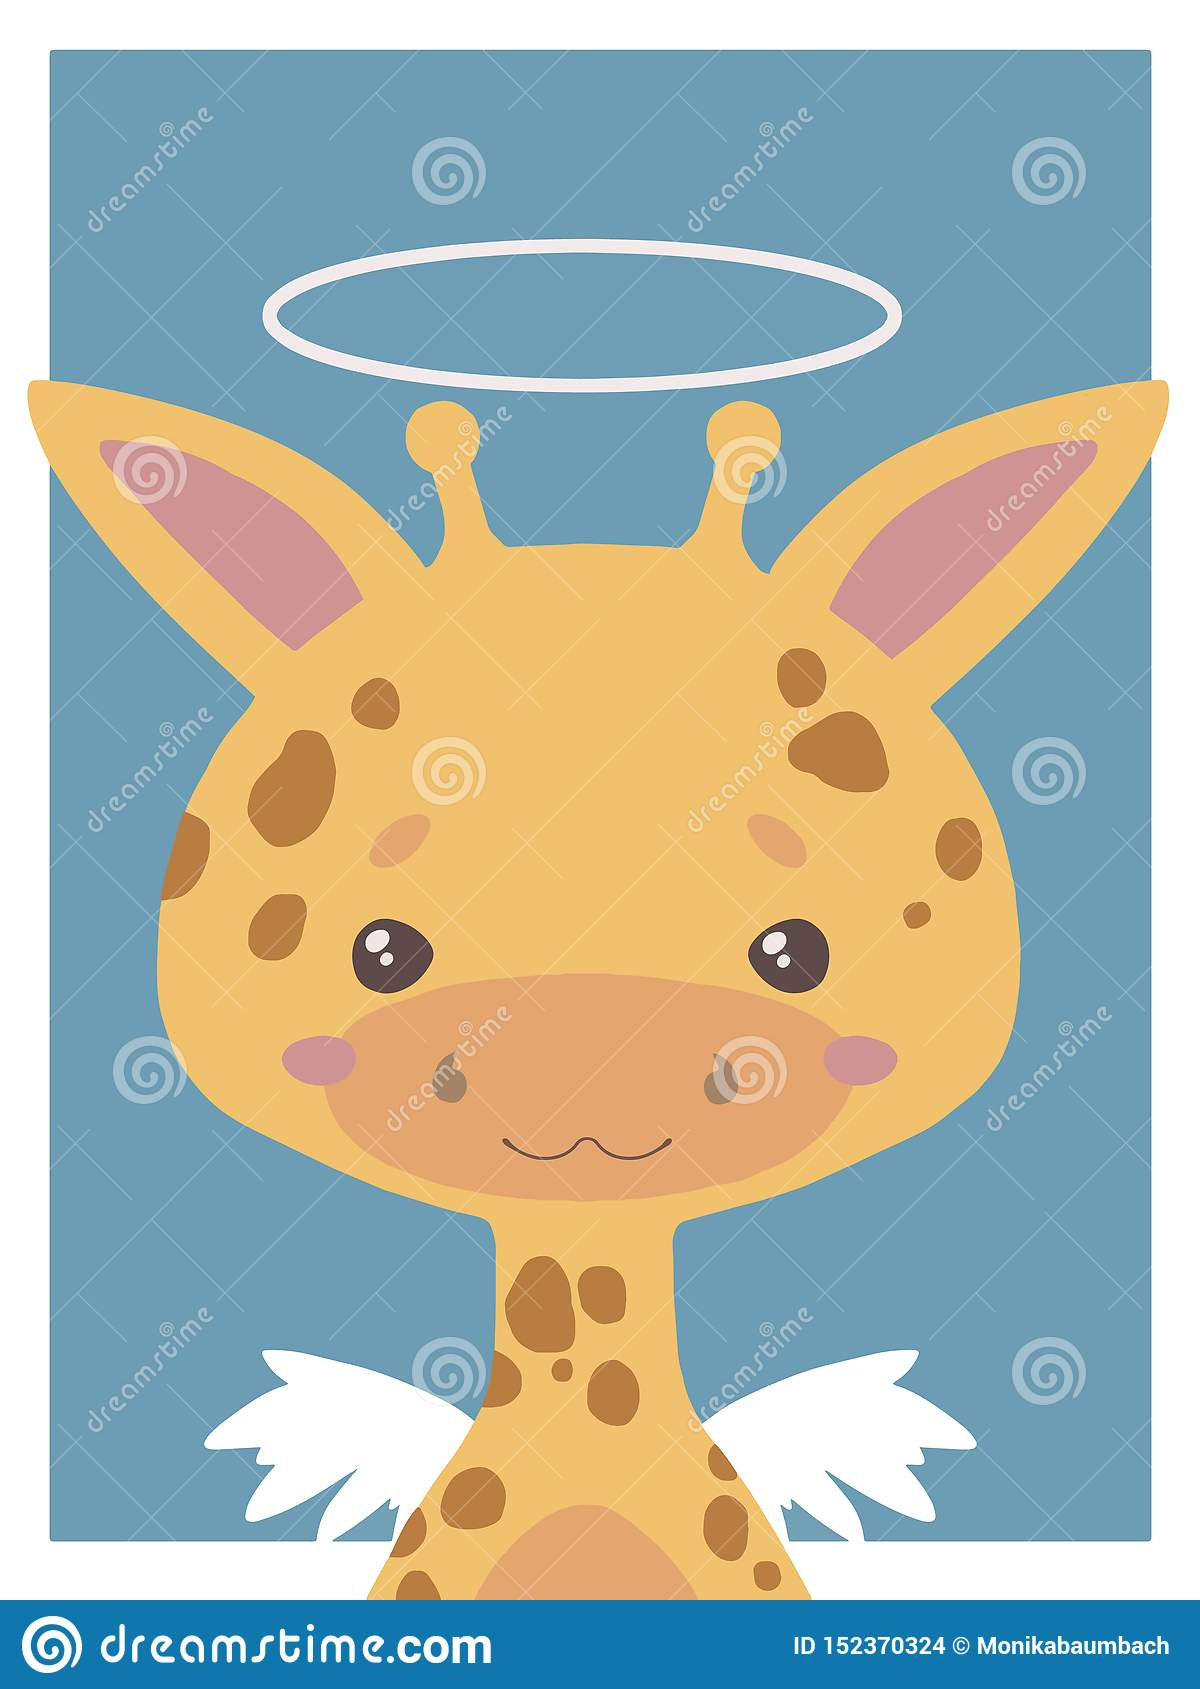 Cute cartoon style vector animal drawing of a guardian angel giraffe with halo and wings suitable for nursery